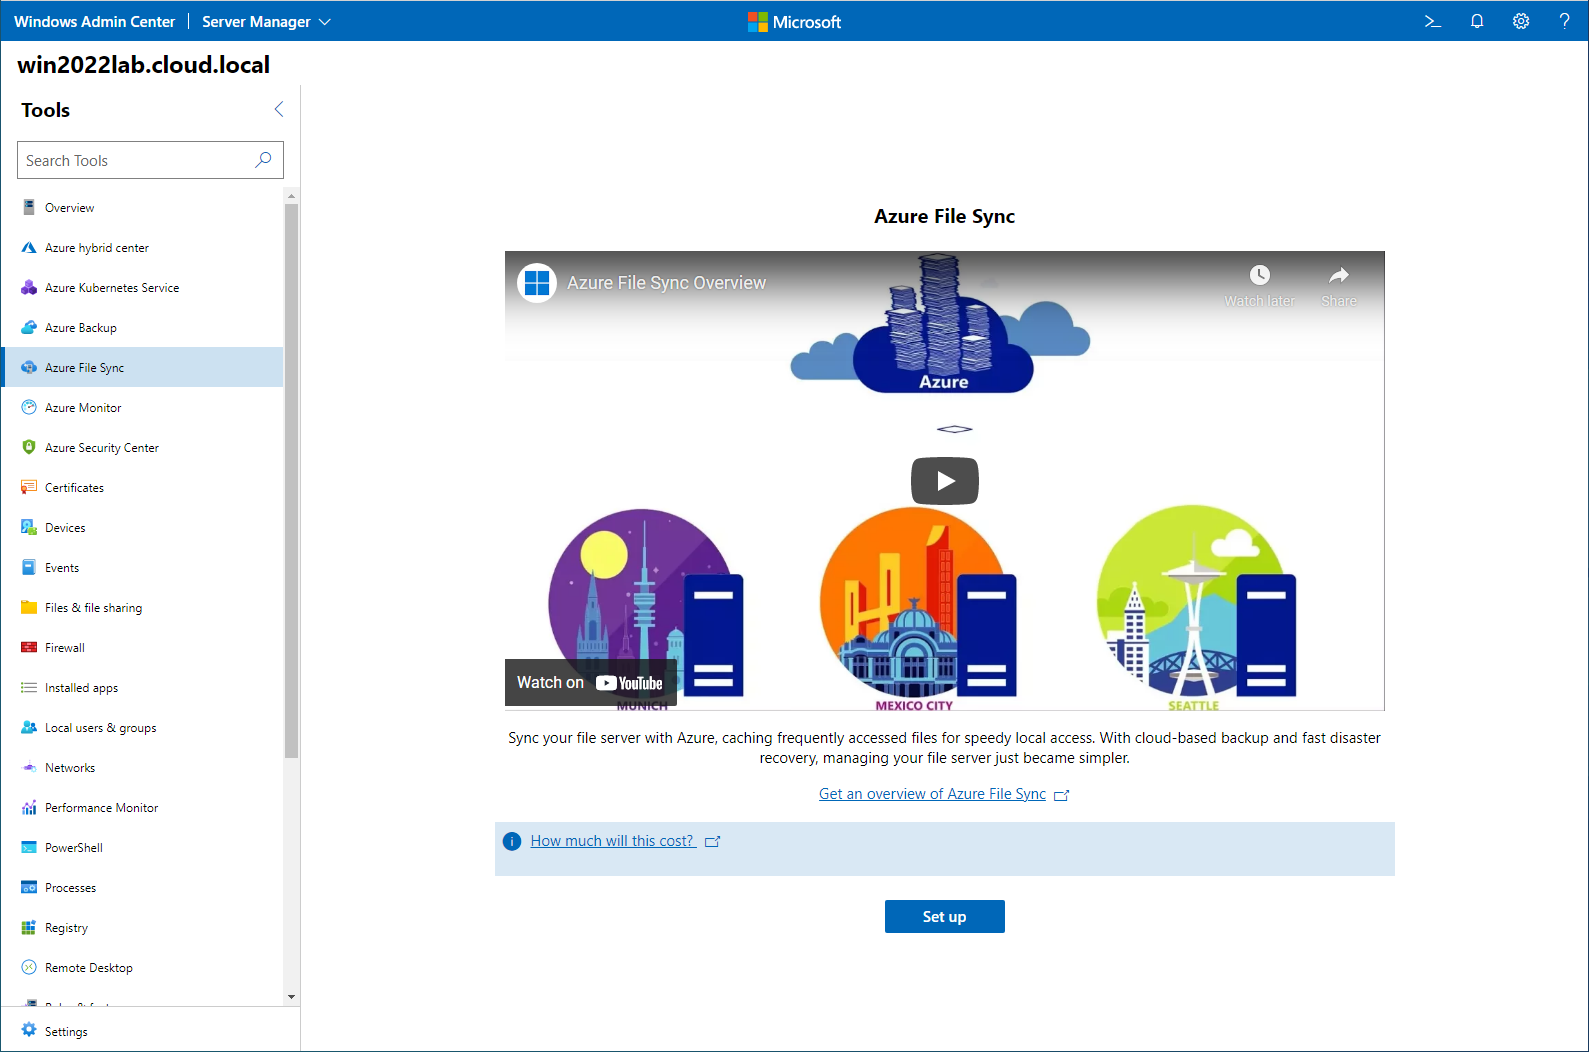 Azure File Sync available in Windows Admin Center